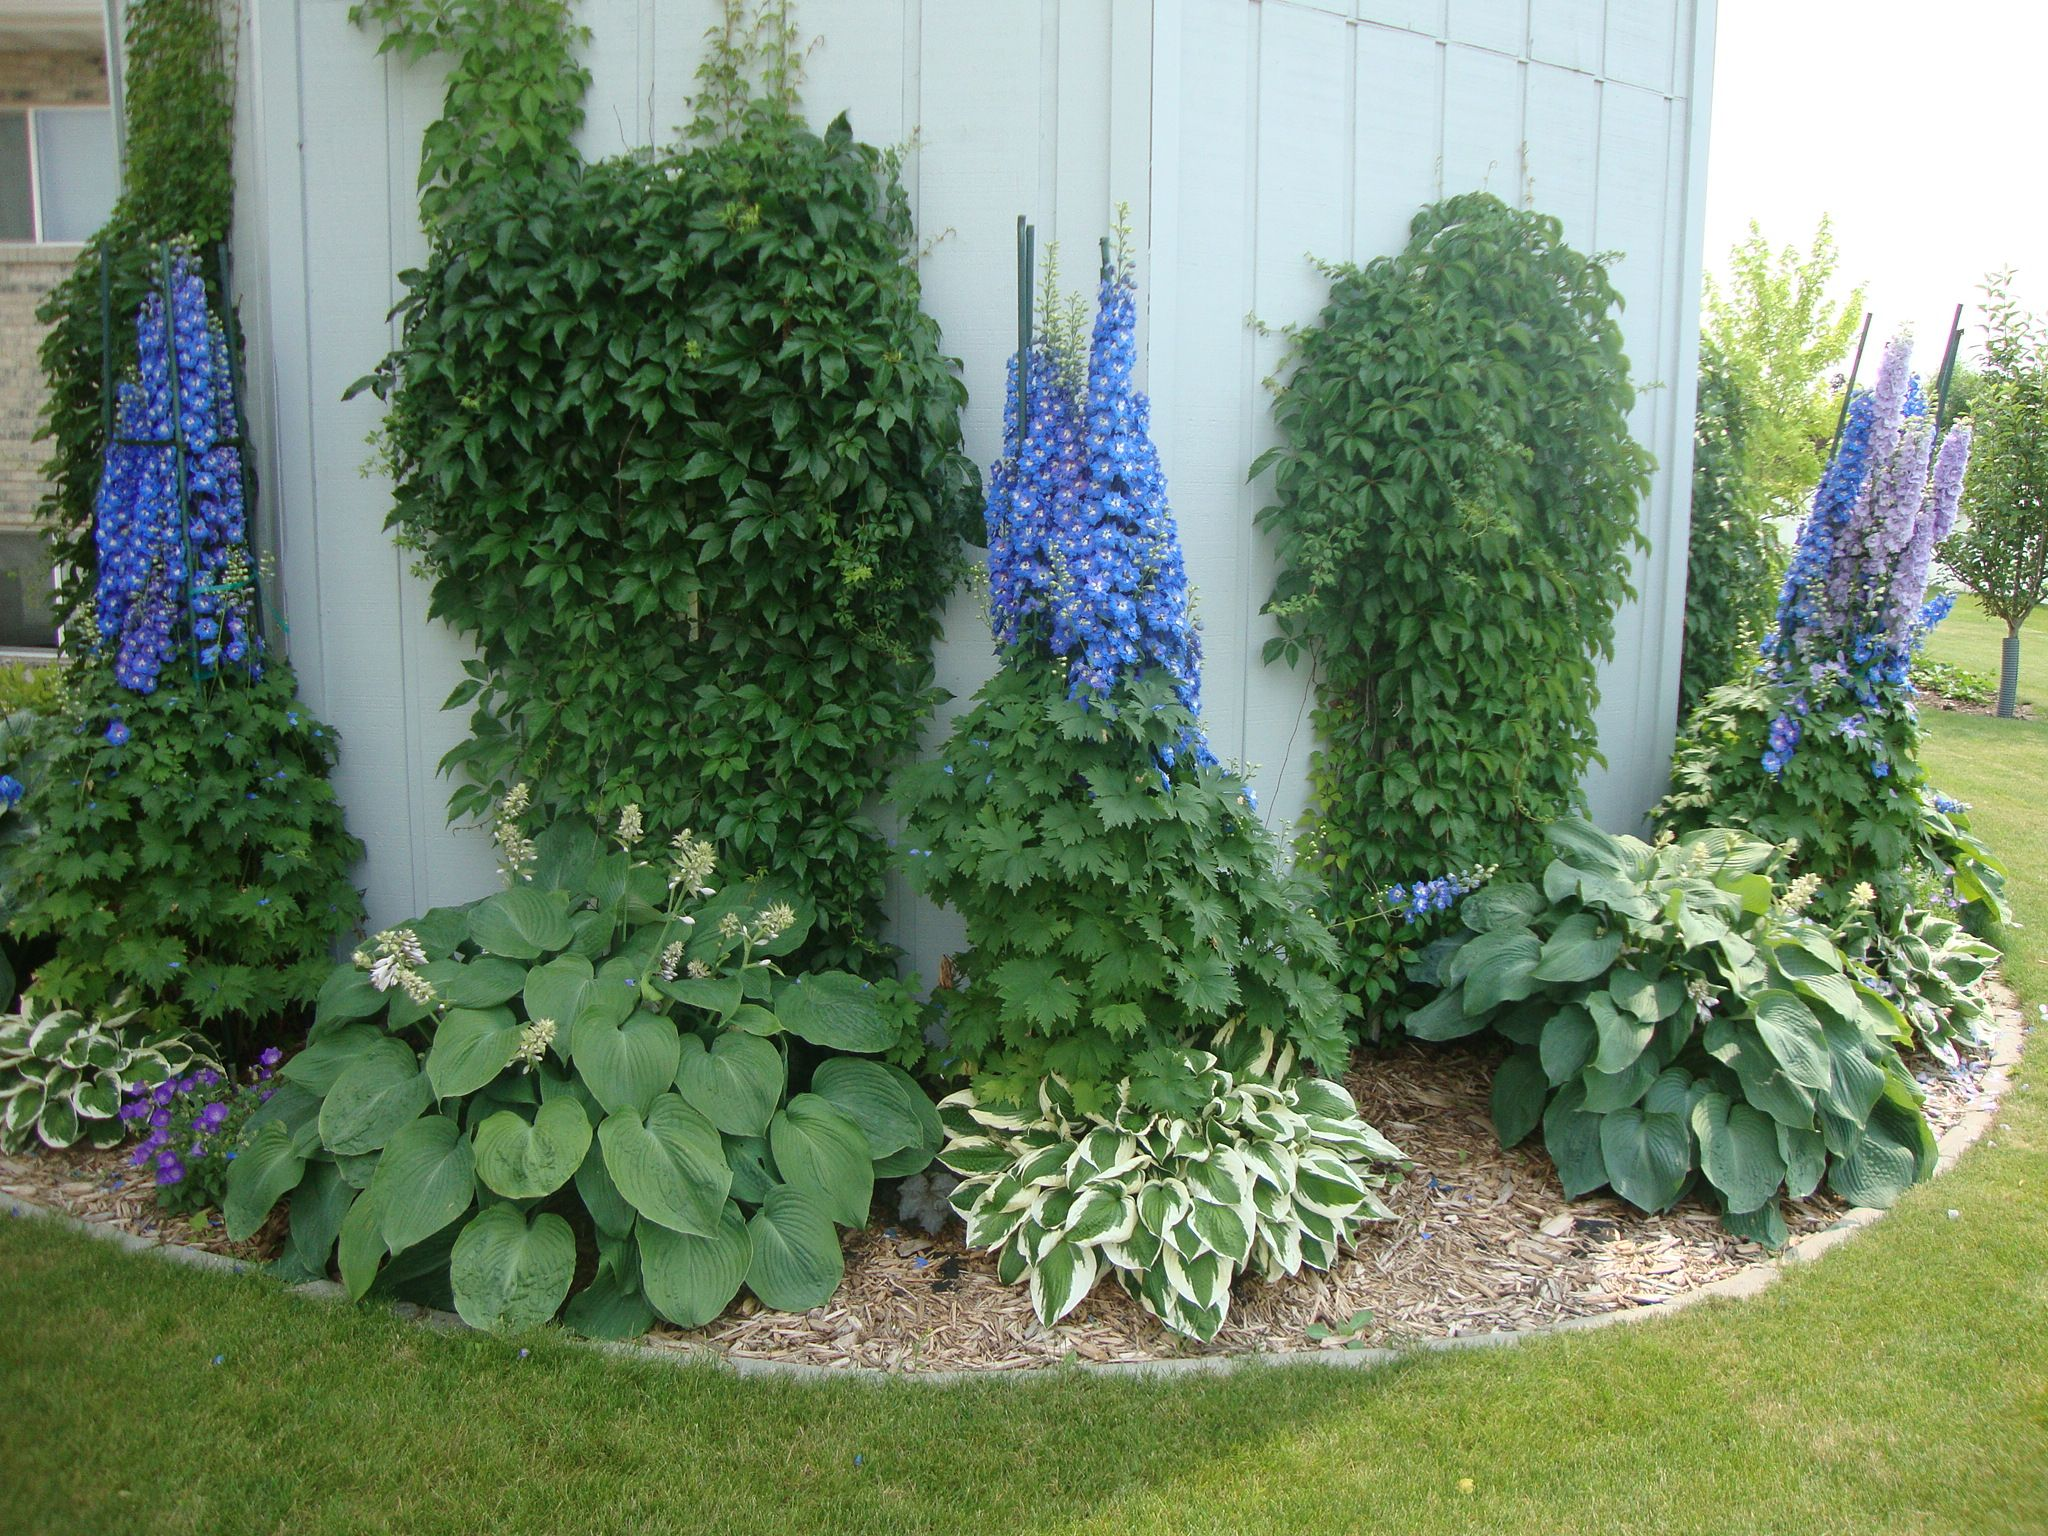 Hostas and delphiniums yes they can grow together